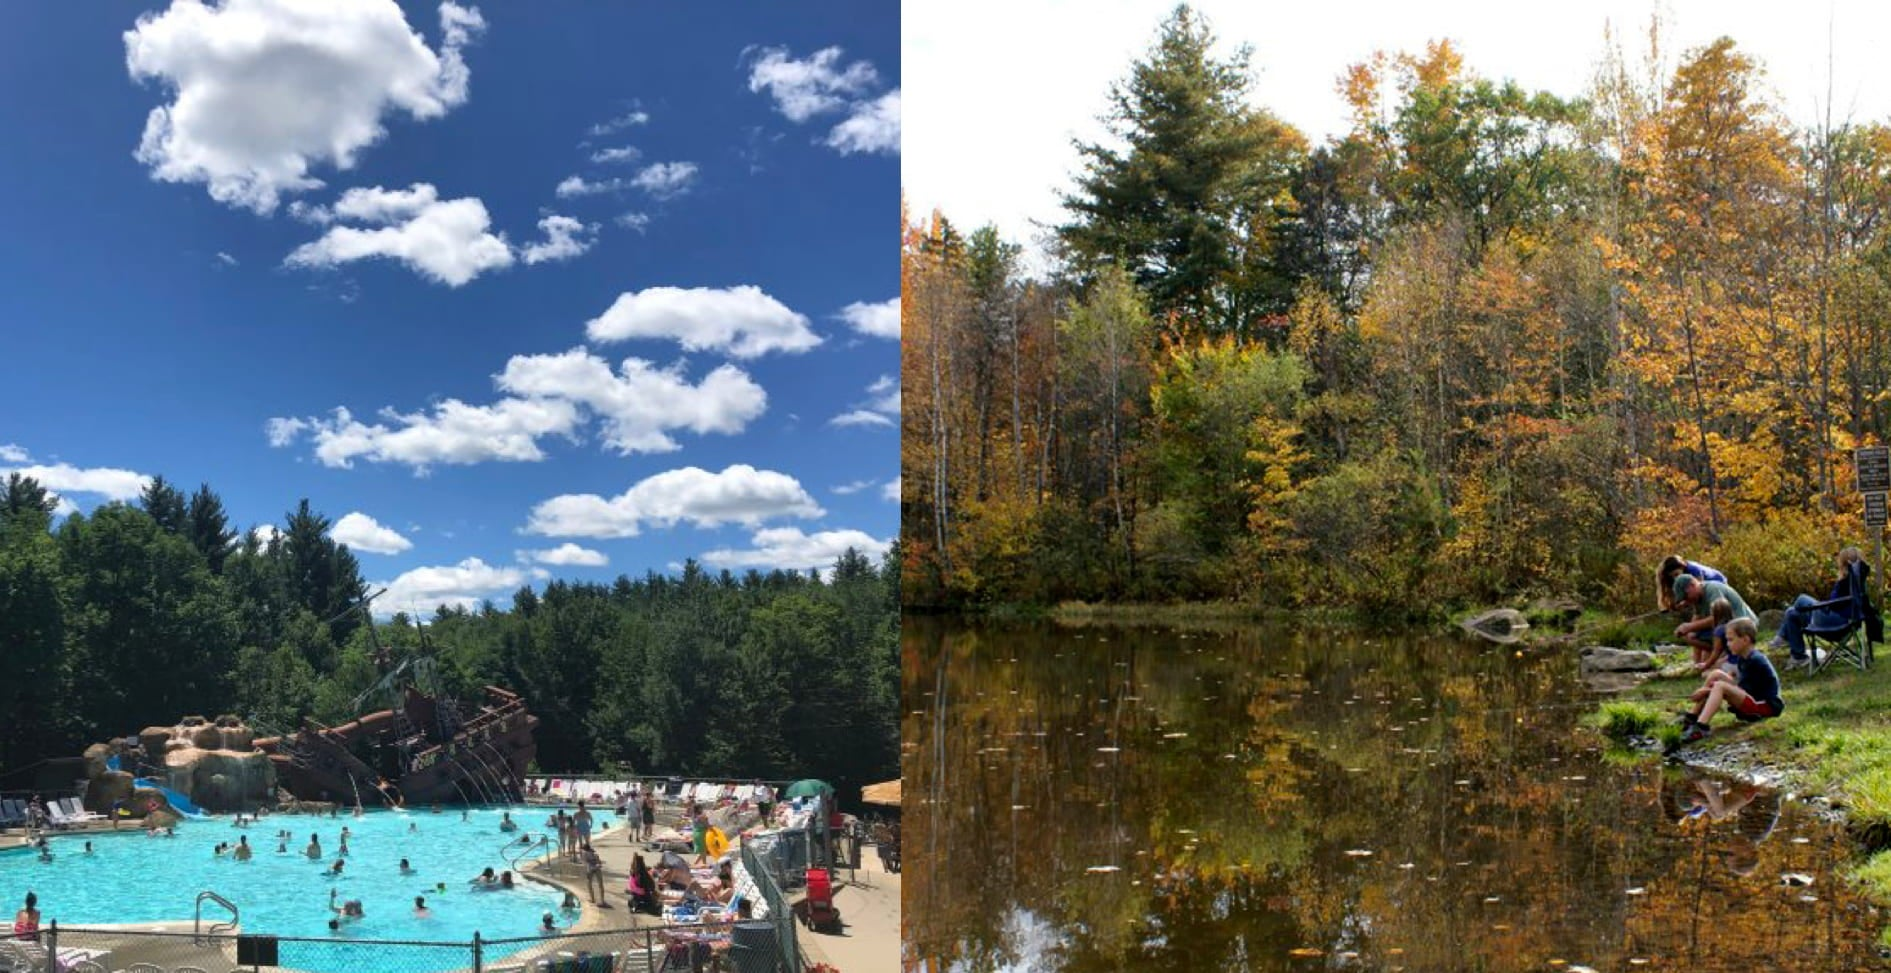 a split image of a pool and a family fishing